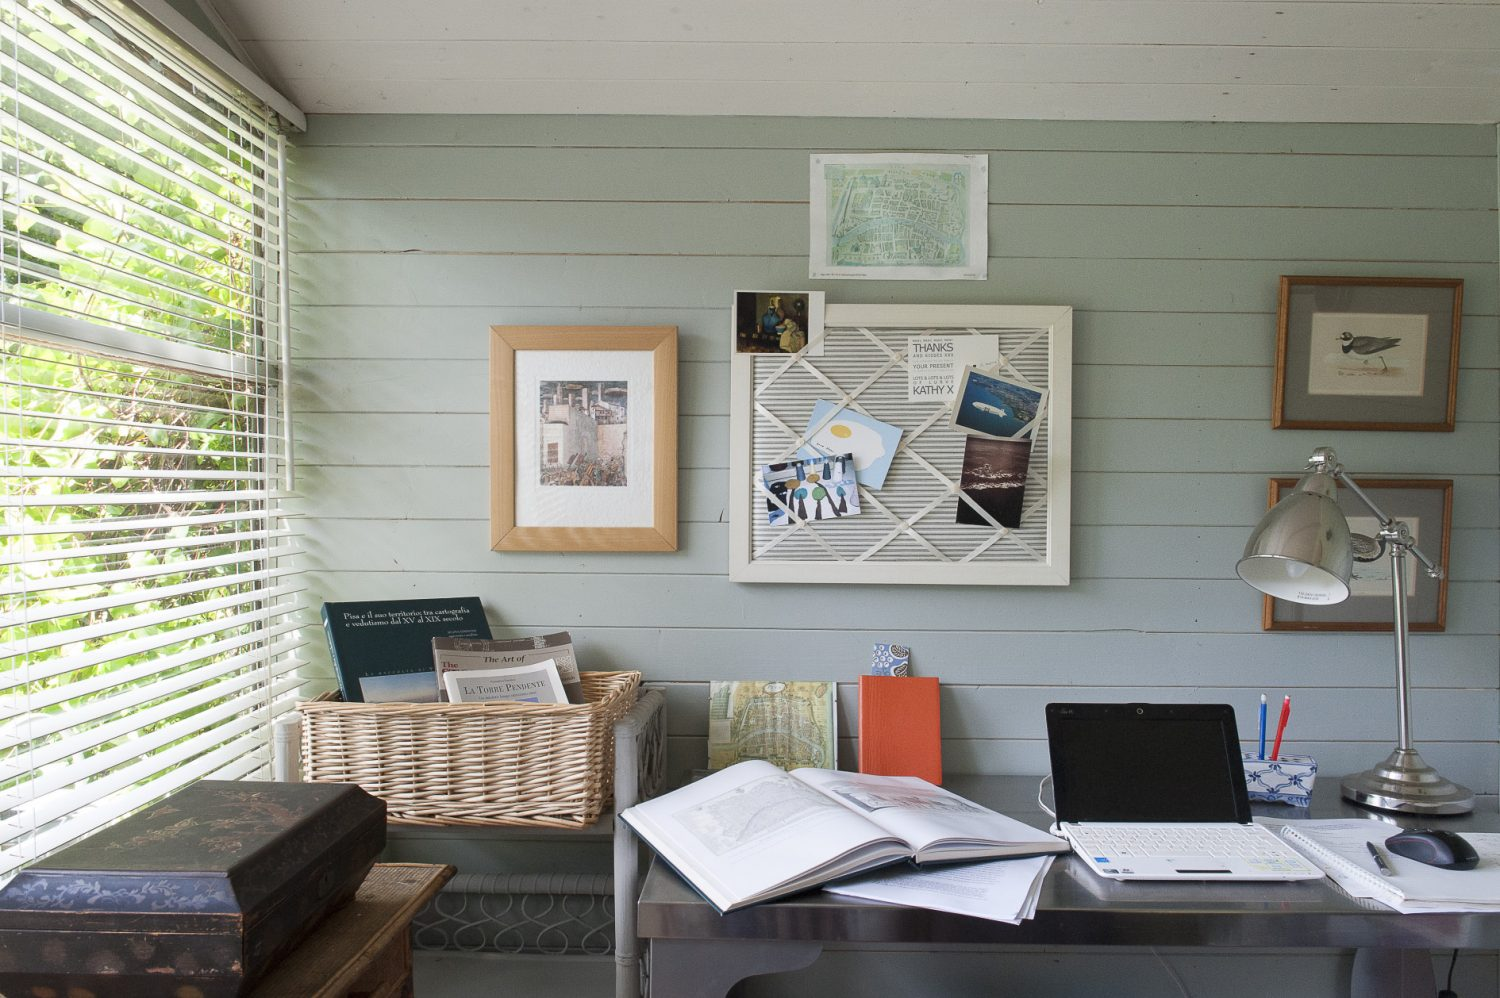 In order to write, Debbie escapes to the summerhouse tucked away in a corner of the garden. Previously rather neglected, it is now a smart tongue and groove clad sanctuary painted in a very restful pale blue, the perfect place to write a novel